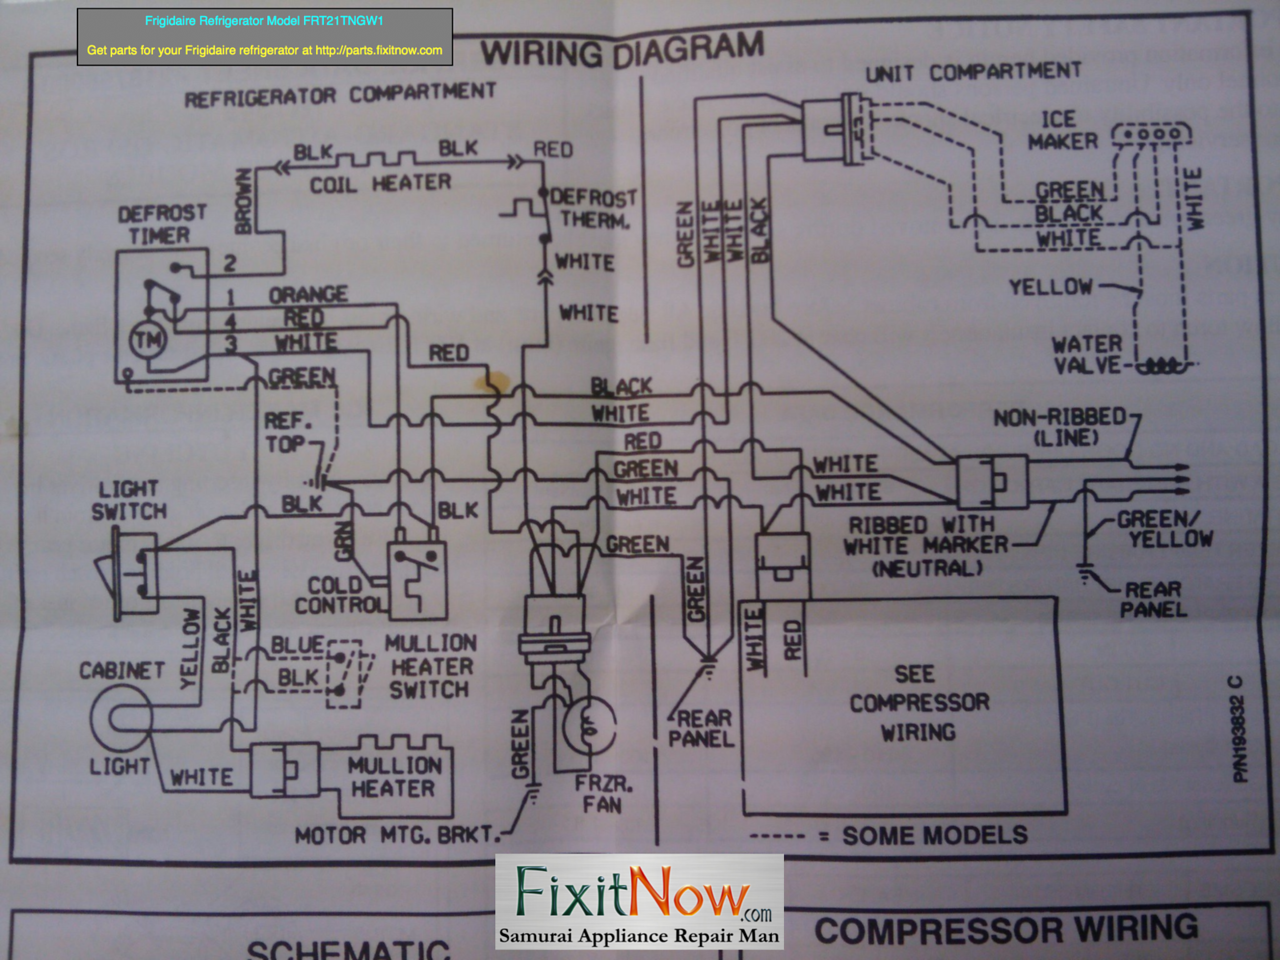 Wiring Diagrams And Schematics Appliantology Commercial Compressor Frigidaire Refrigerator Model Frt21tngw1 Diagram